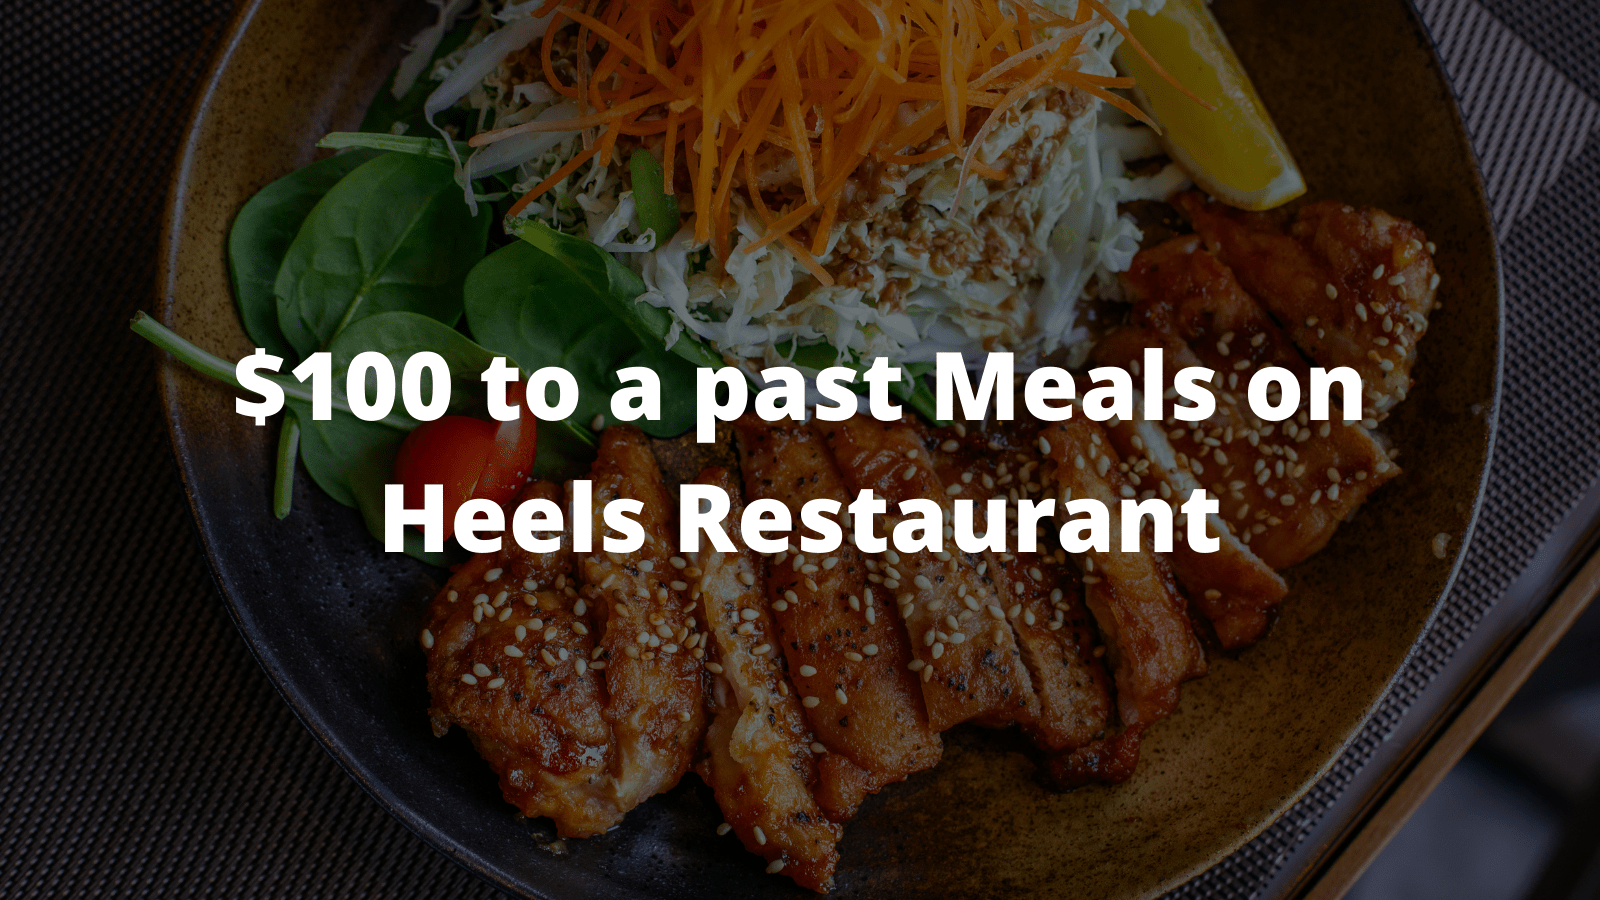 $100 to a past Meals on Heels Restaurant